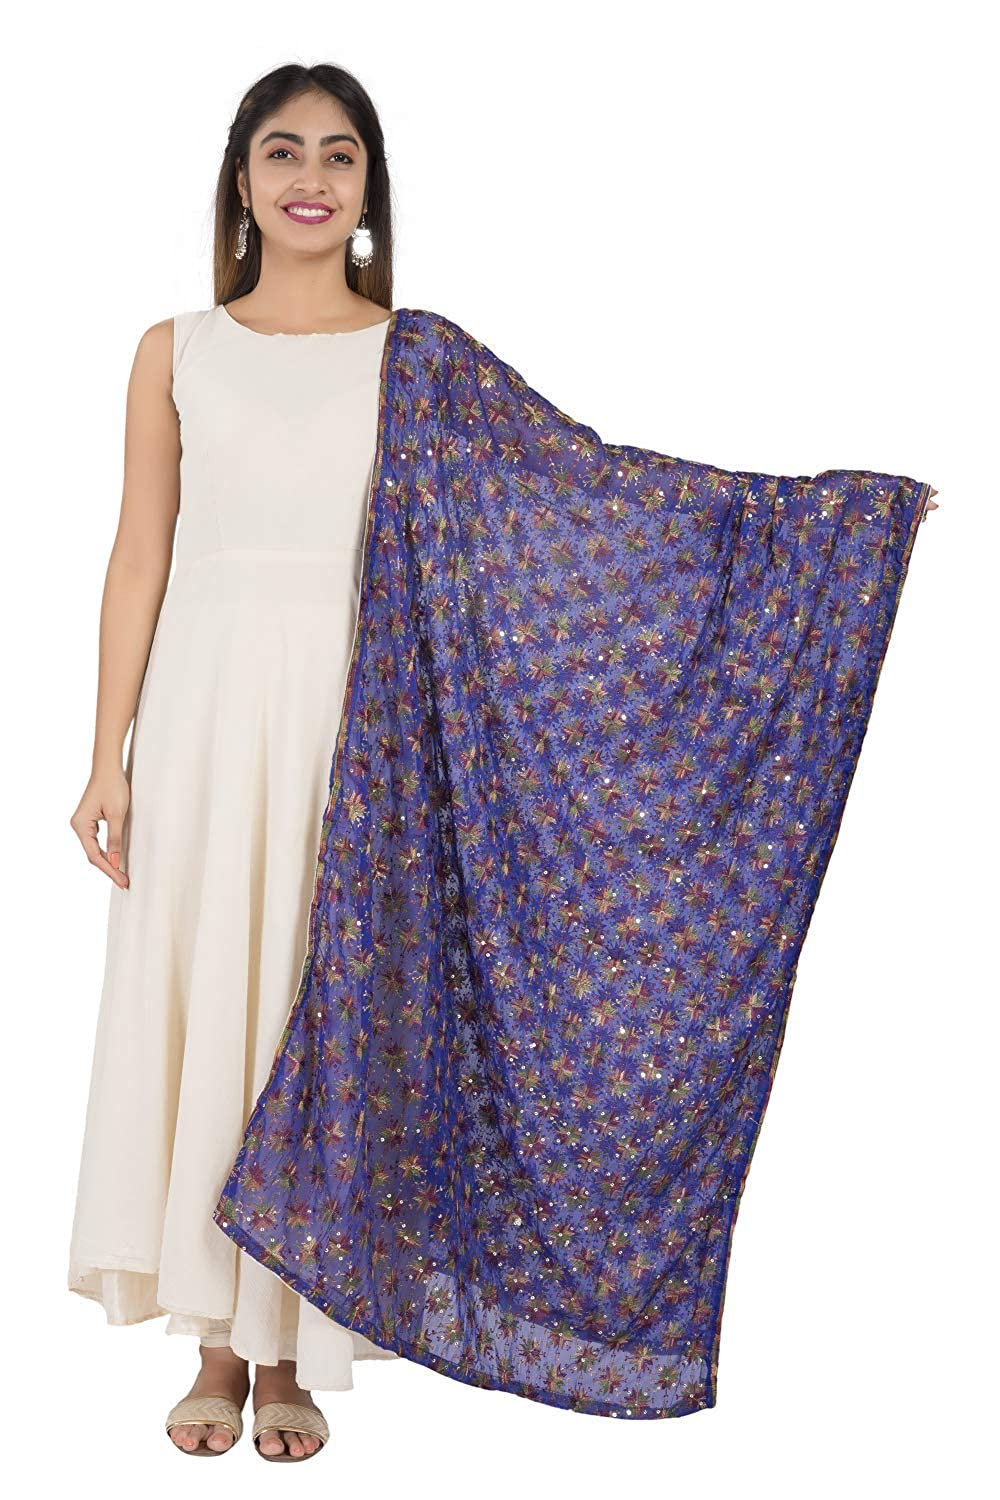 Persian Blue Phulkari Embroidered Chiffon Dupatta - GleamBerry